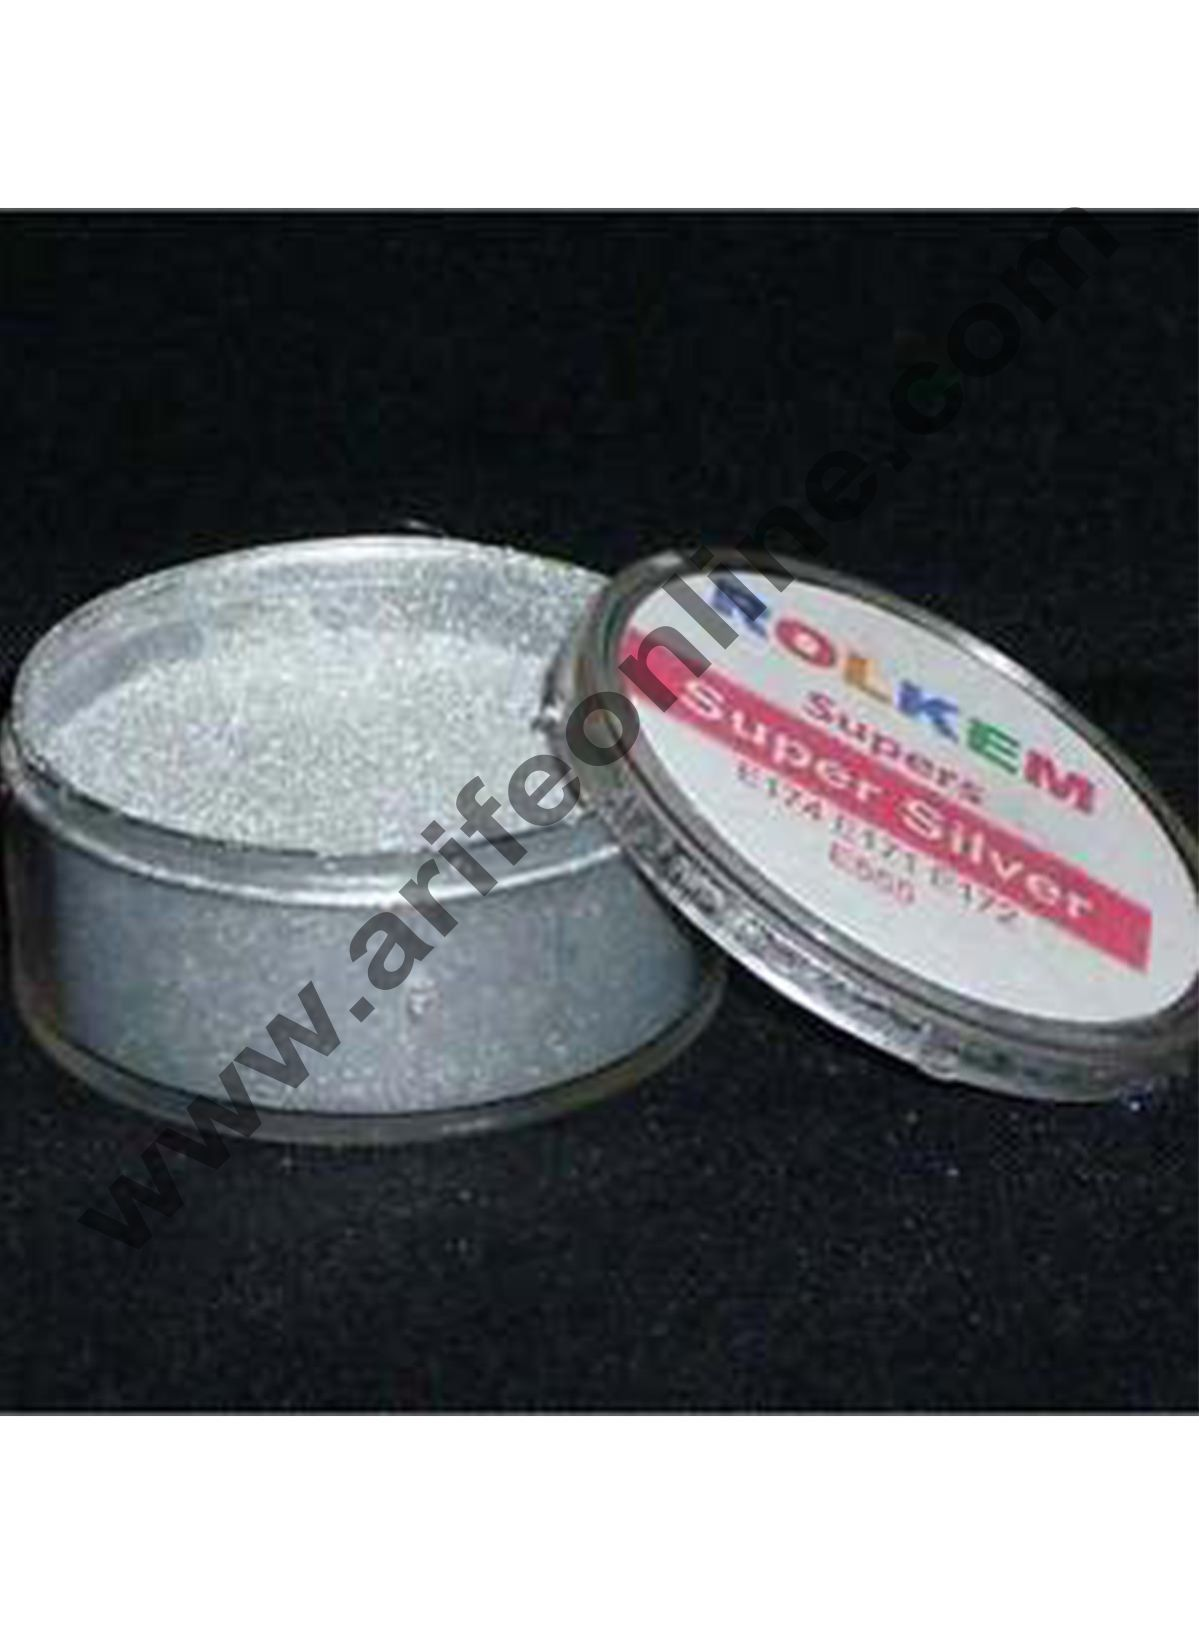 Rolkem Super Silver Metallic Edible Luxury Lustre Dusting Powder 10ml,By Cake Decor